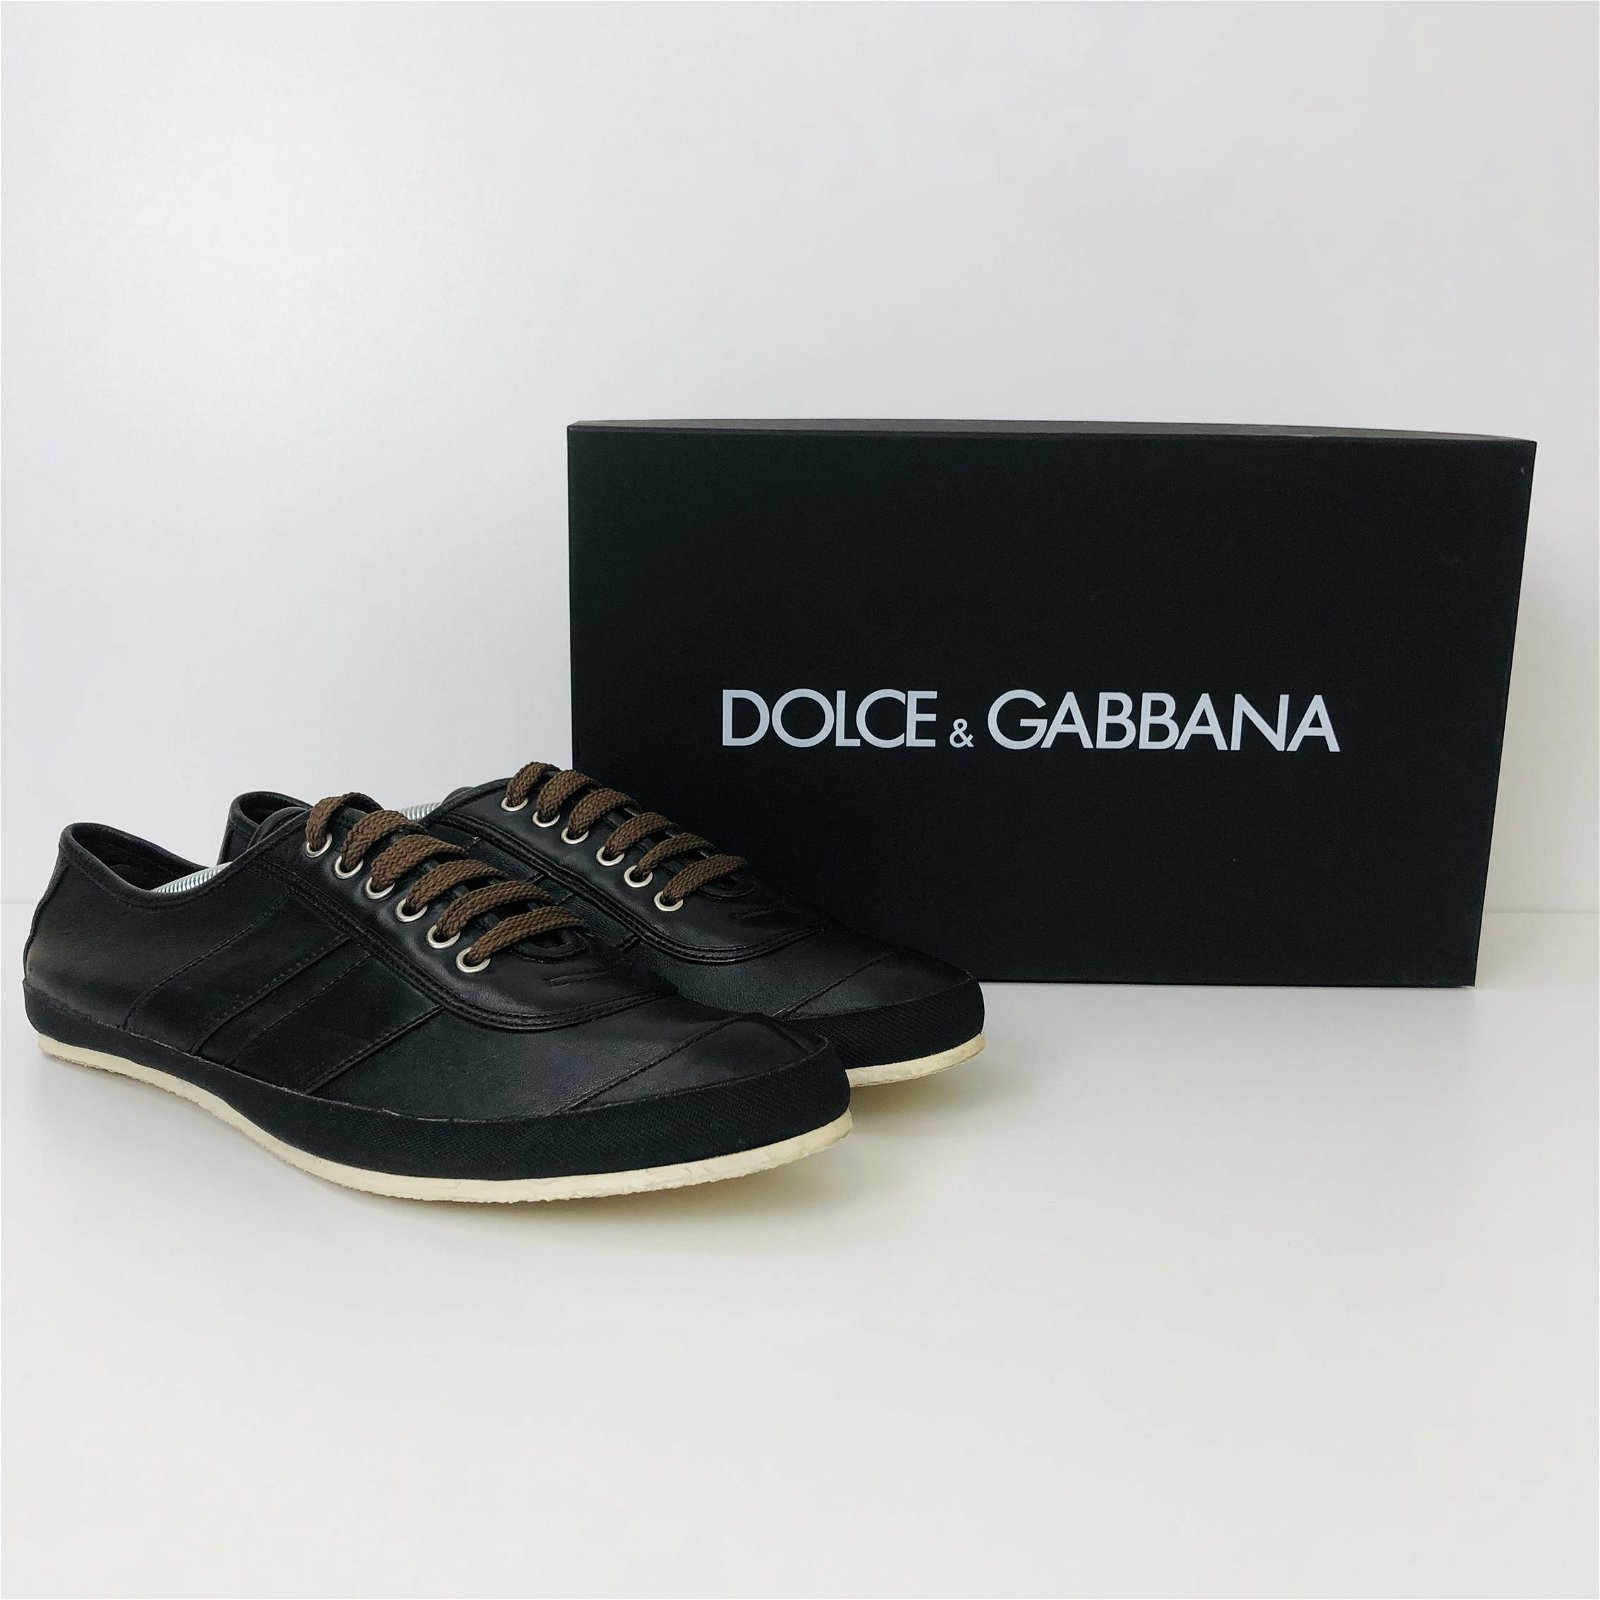 Men's Dolce & Gabbana Leather Sneakers US 11